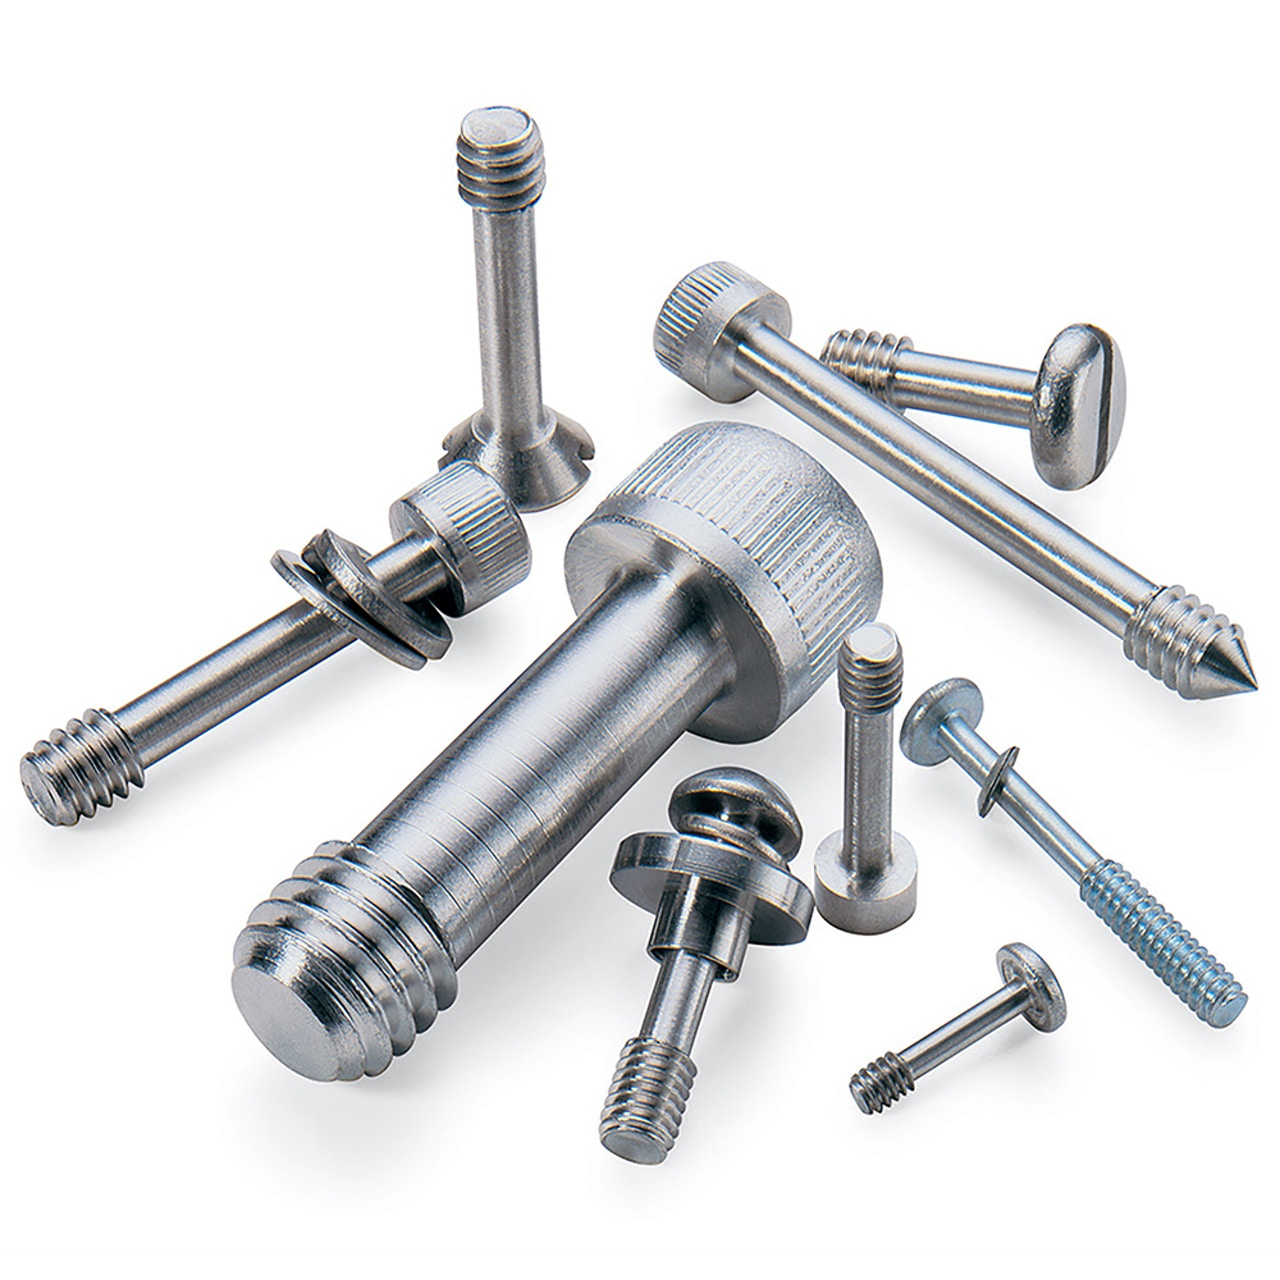 Captive screws and fasteners